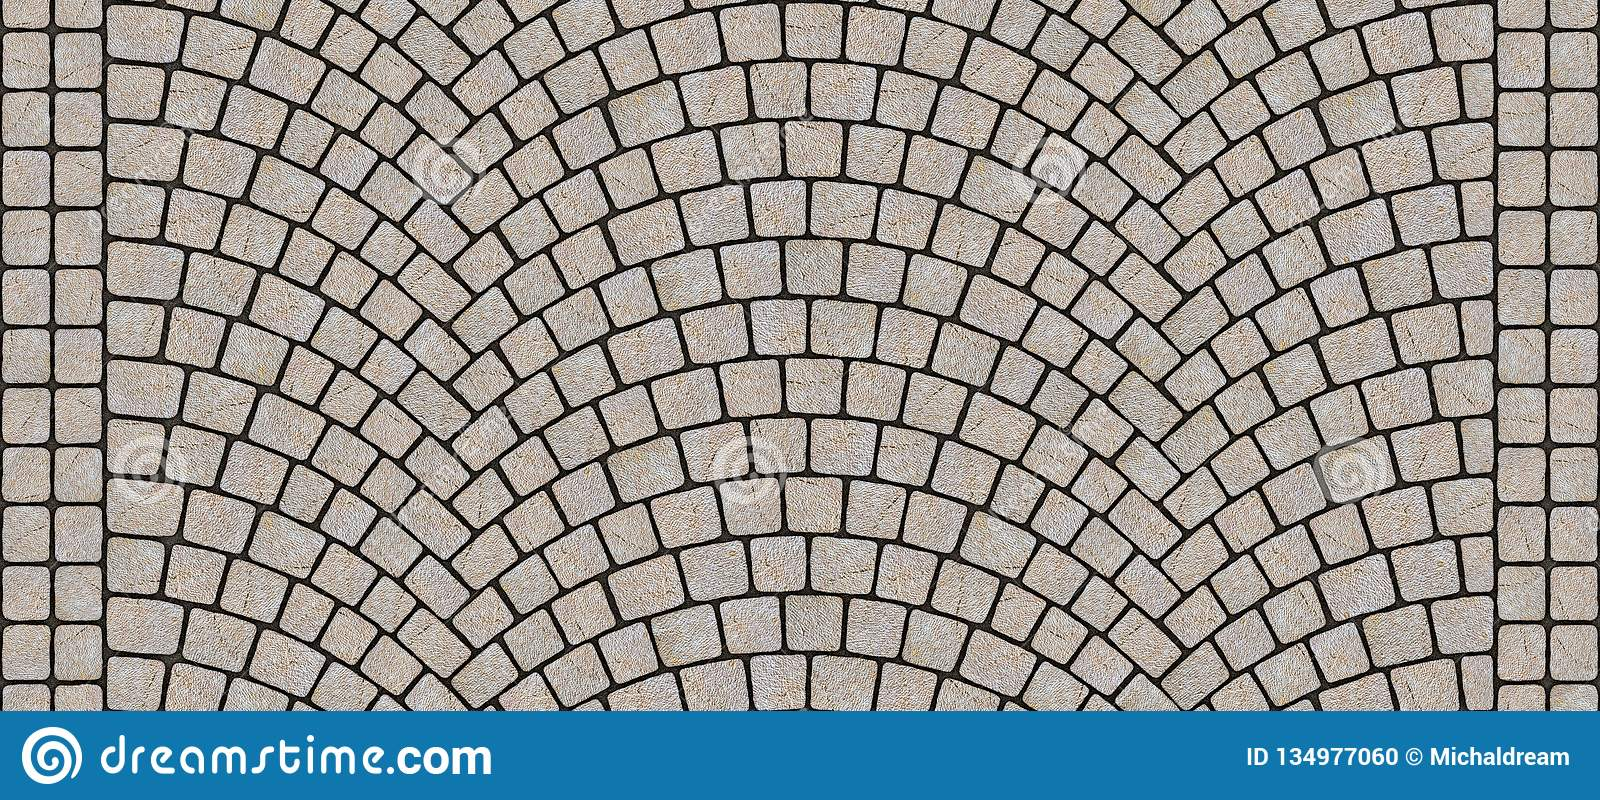 . Road Curved Cobblestone Texture 064 Stock Illustration